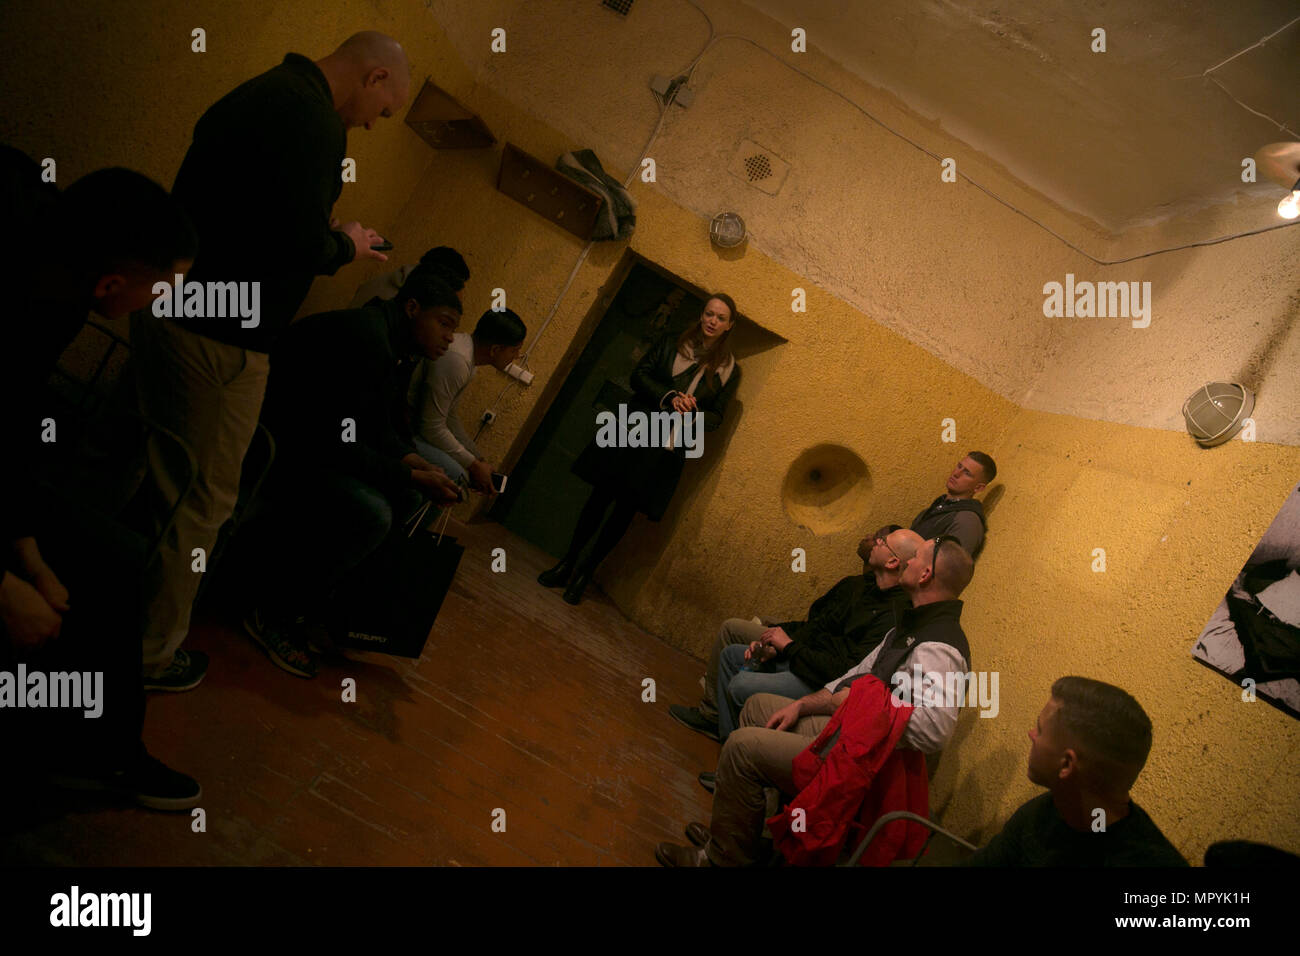 U.S. Marines with Black Sea Rotational Force 17.1  check out a holding cell during a tour of the KGB Corner House museum in Riga, Latvia, April 23, 2017. The event was part of cultural day for the Marines who got the chance to learn more about Latvian history and culture. (U.S. Marine Corps photo by Cpl. Sean J. Berry) - Stock Image